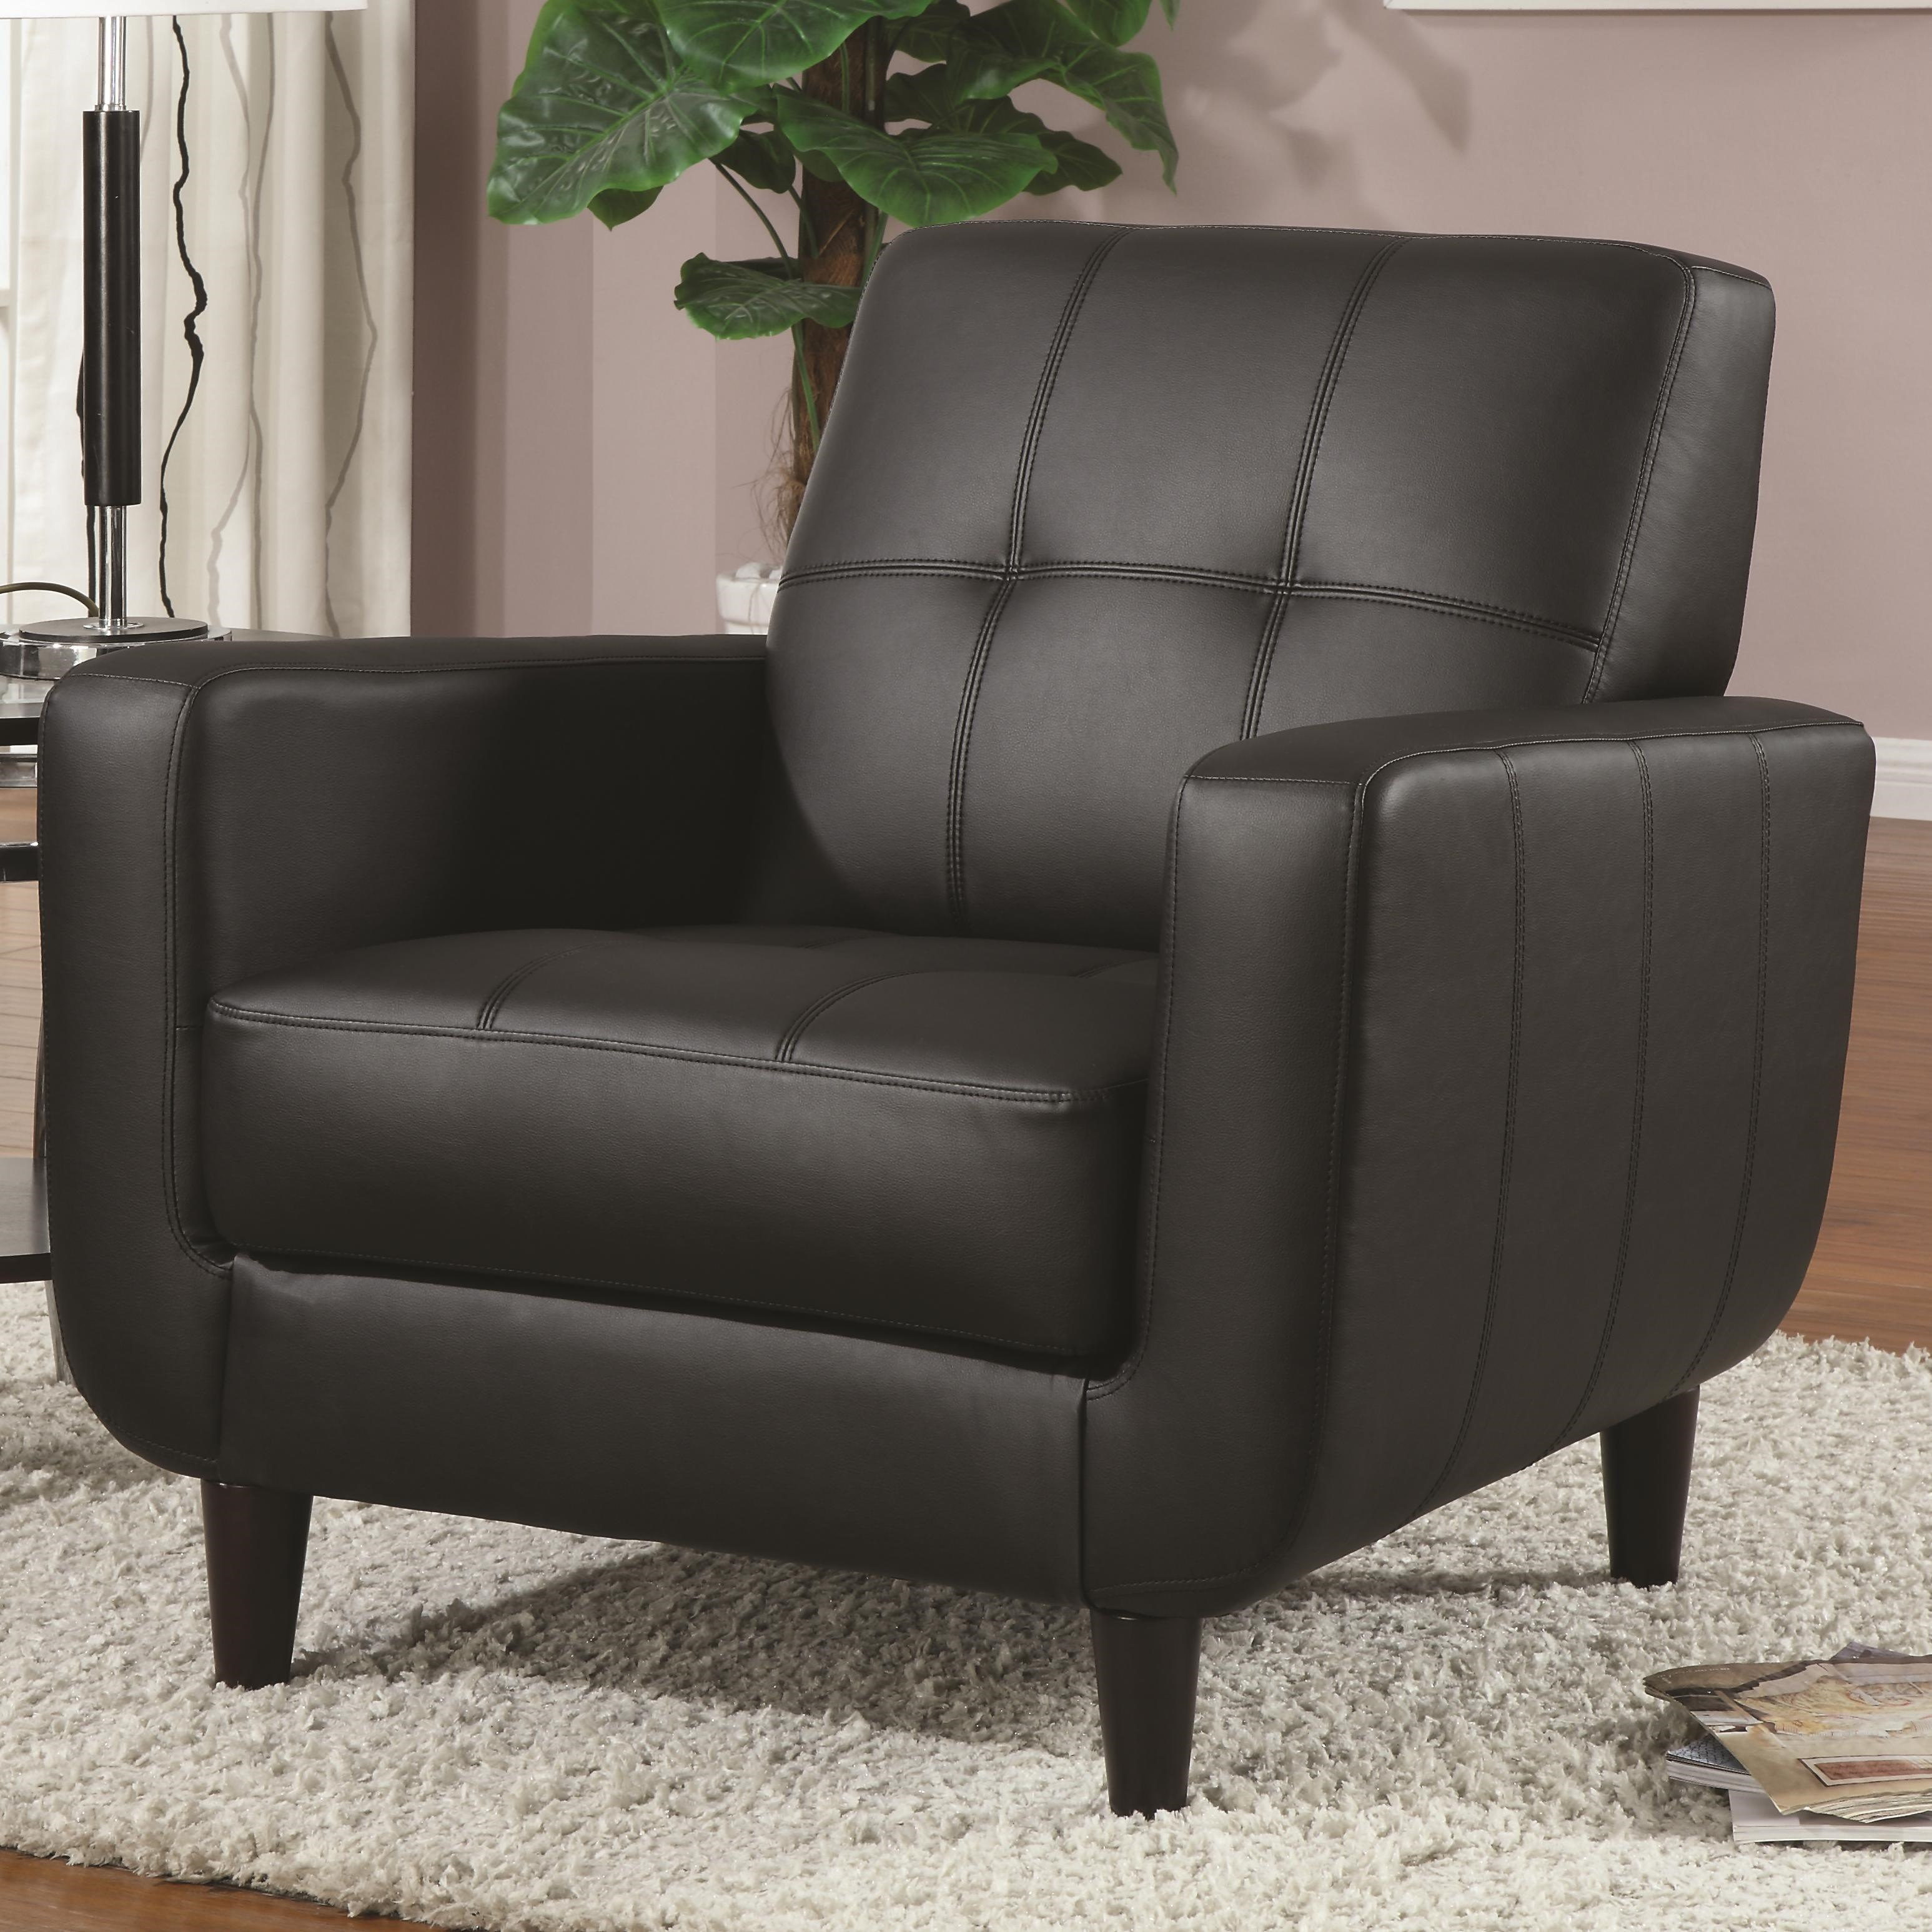 Etonnant Coaster Accent Seating Accent Chair W/ Round Wood Legs